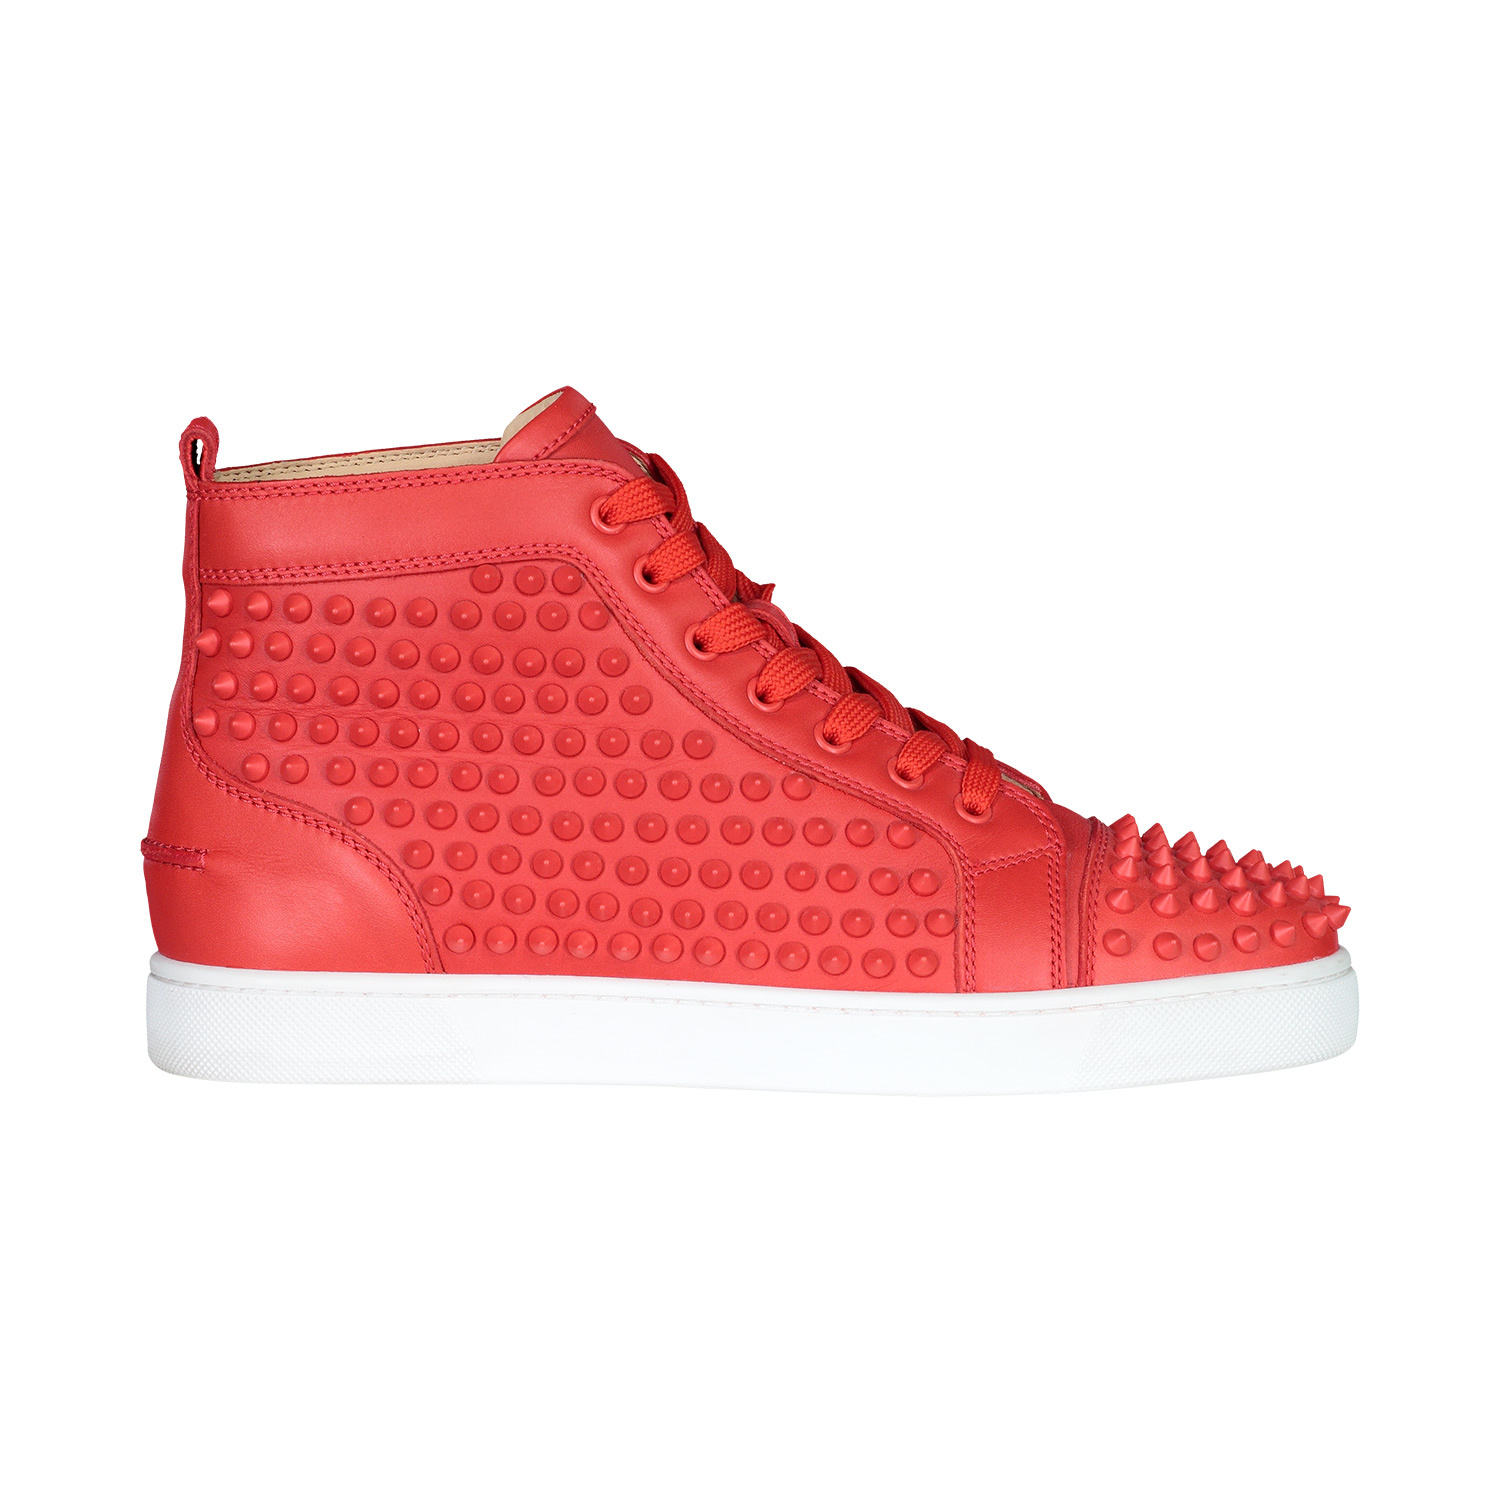 Christian Louboutin N/A - Christian Louboutin Red Spike Leather Louis Flats Sneakers